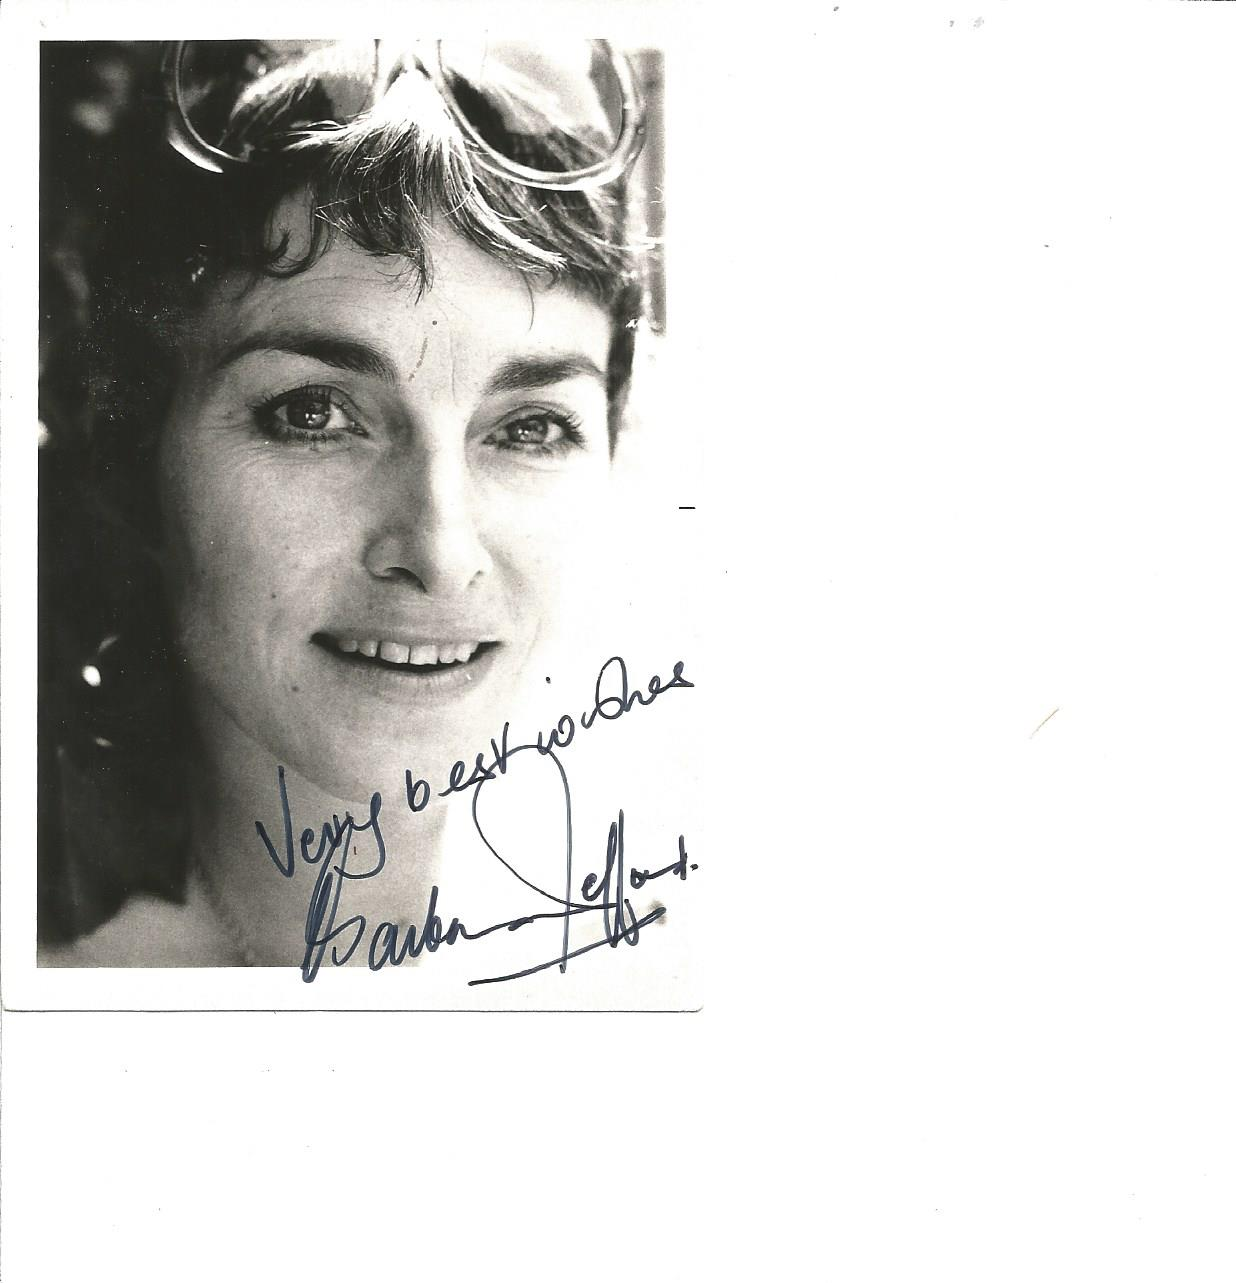 Lot 74 - Barbara Jefford signed 6x4 b/w photo. Good Condition. All signed pieces come with a Certificate of